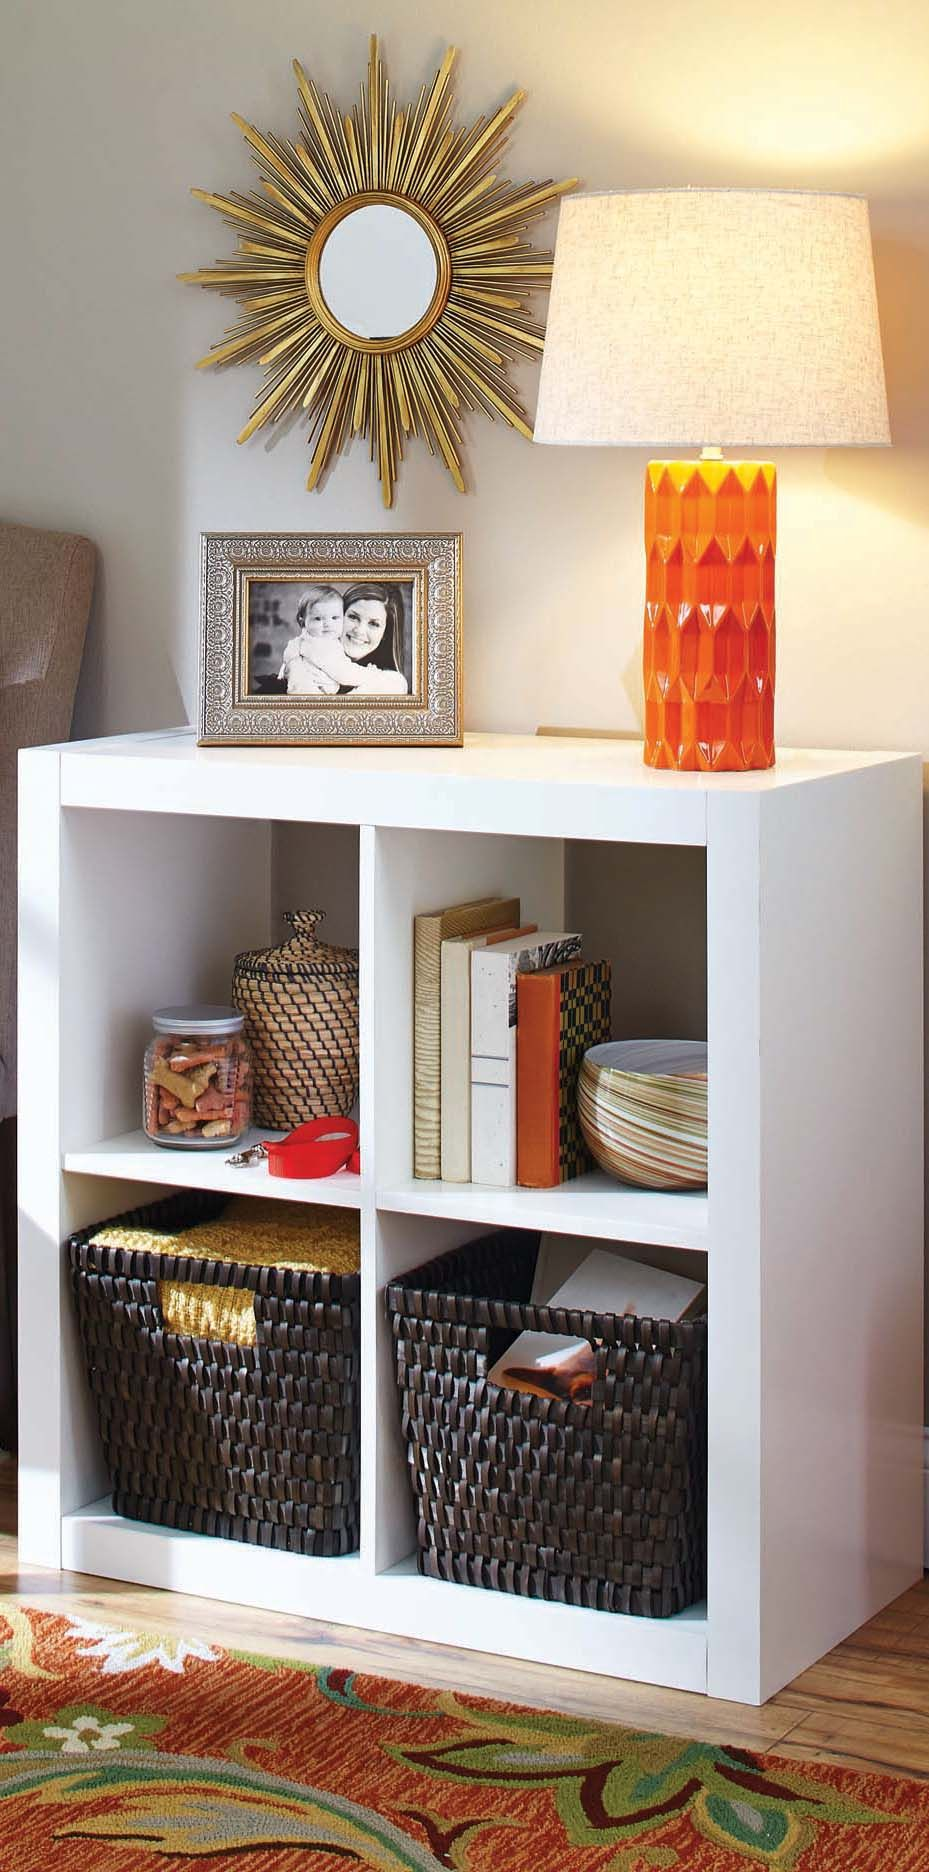 Small Space Organization For Every Corner In Your Home Shop Cube Organizers From Better Homes